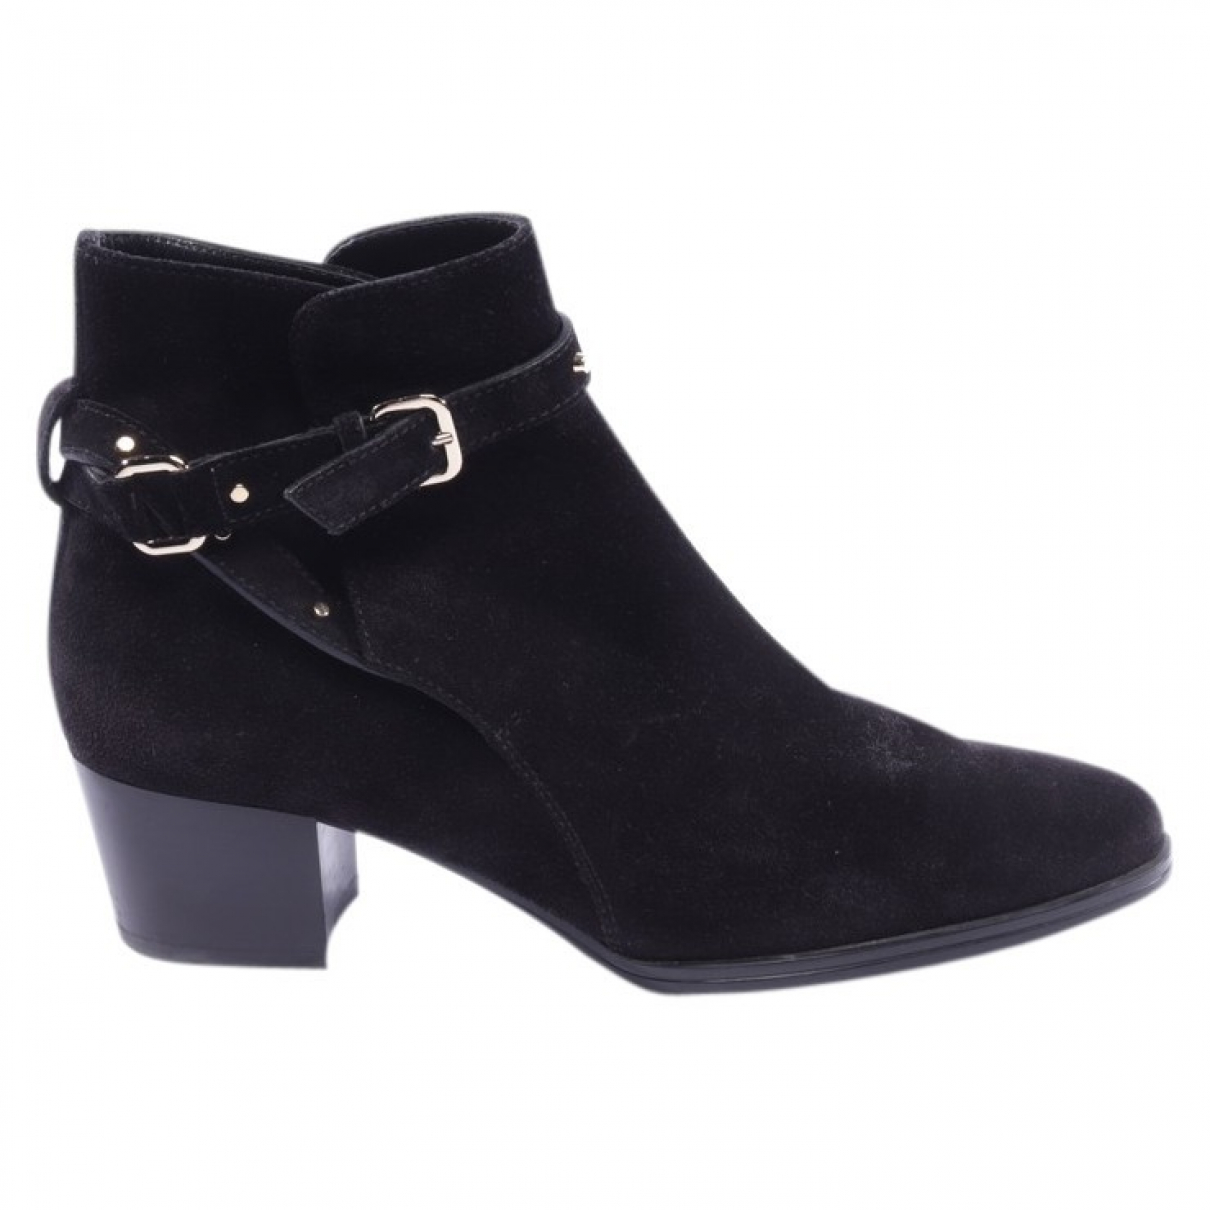 Tod's N Black Leather Ankle boots for Women 37.5 EU